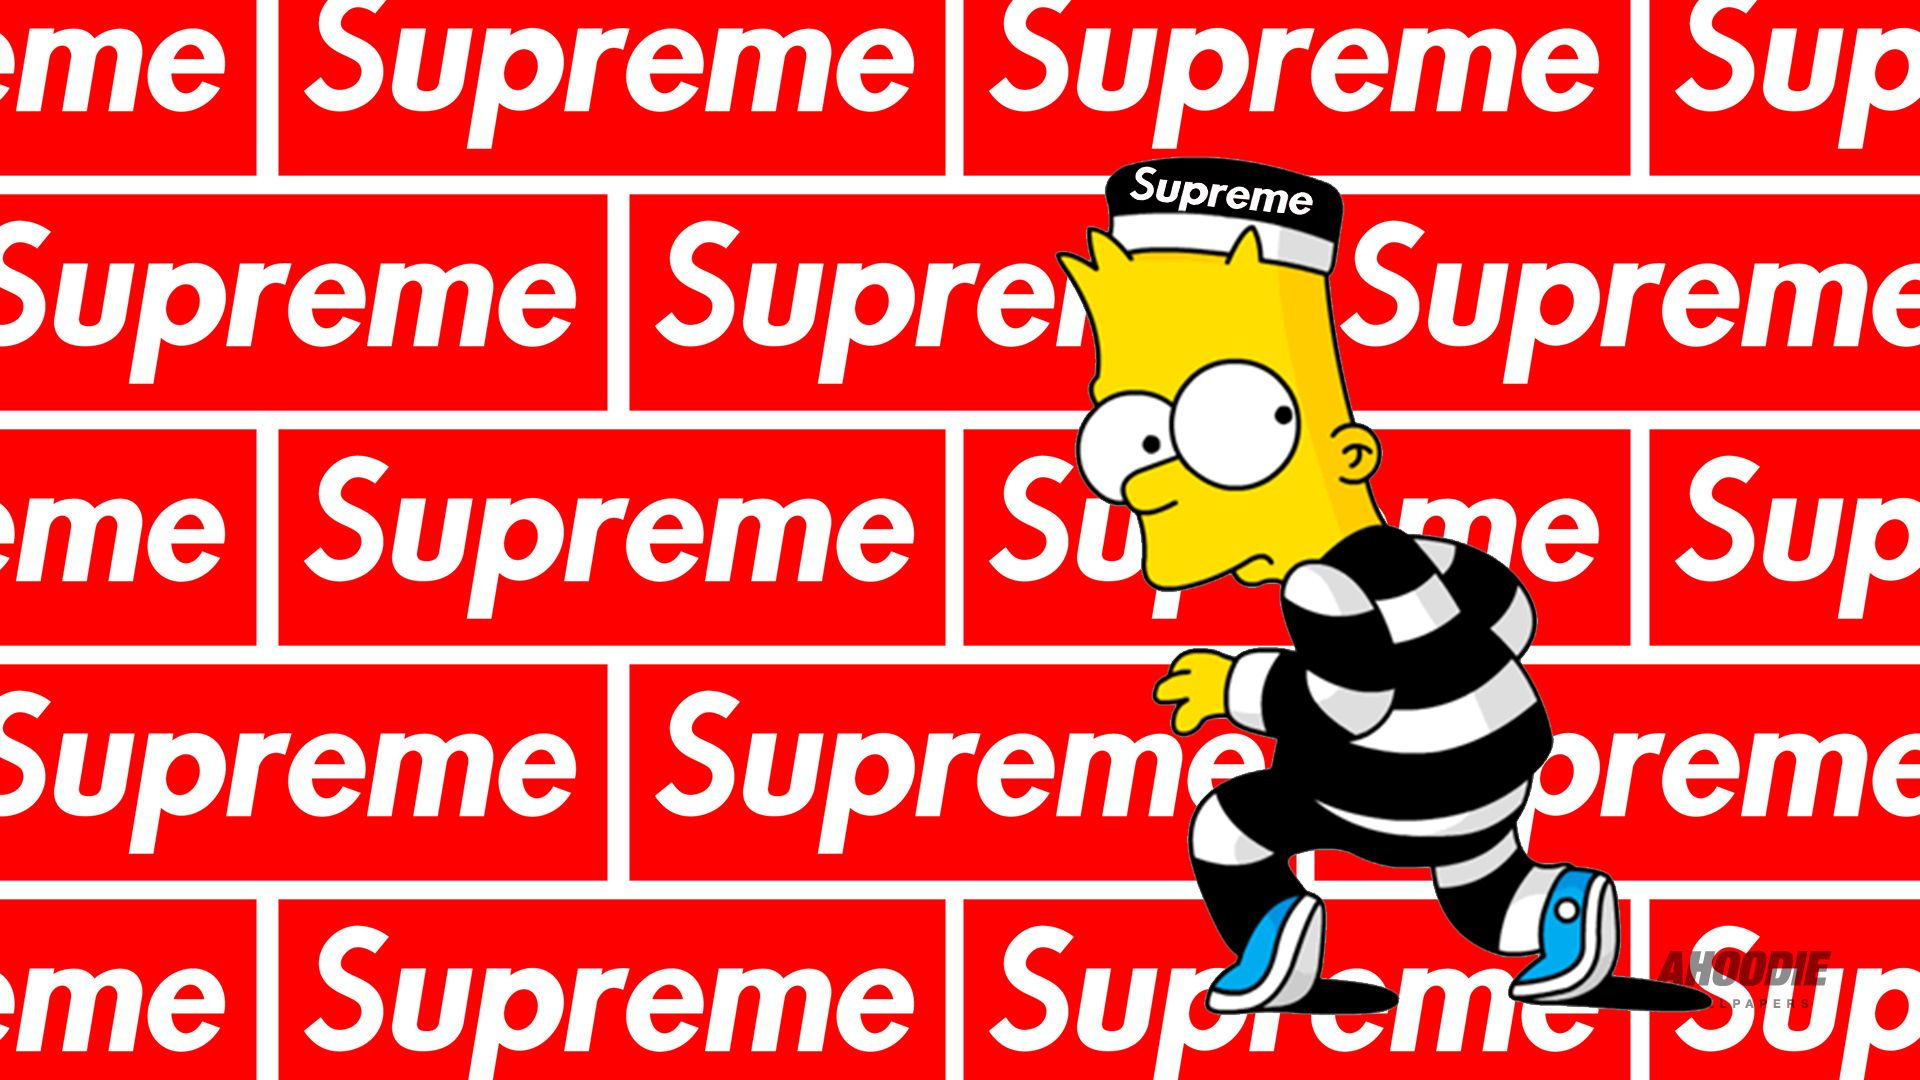 Lit Supreme Cartoon Logo Logodix